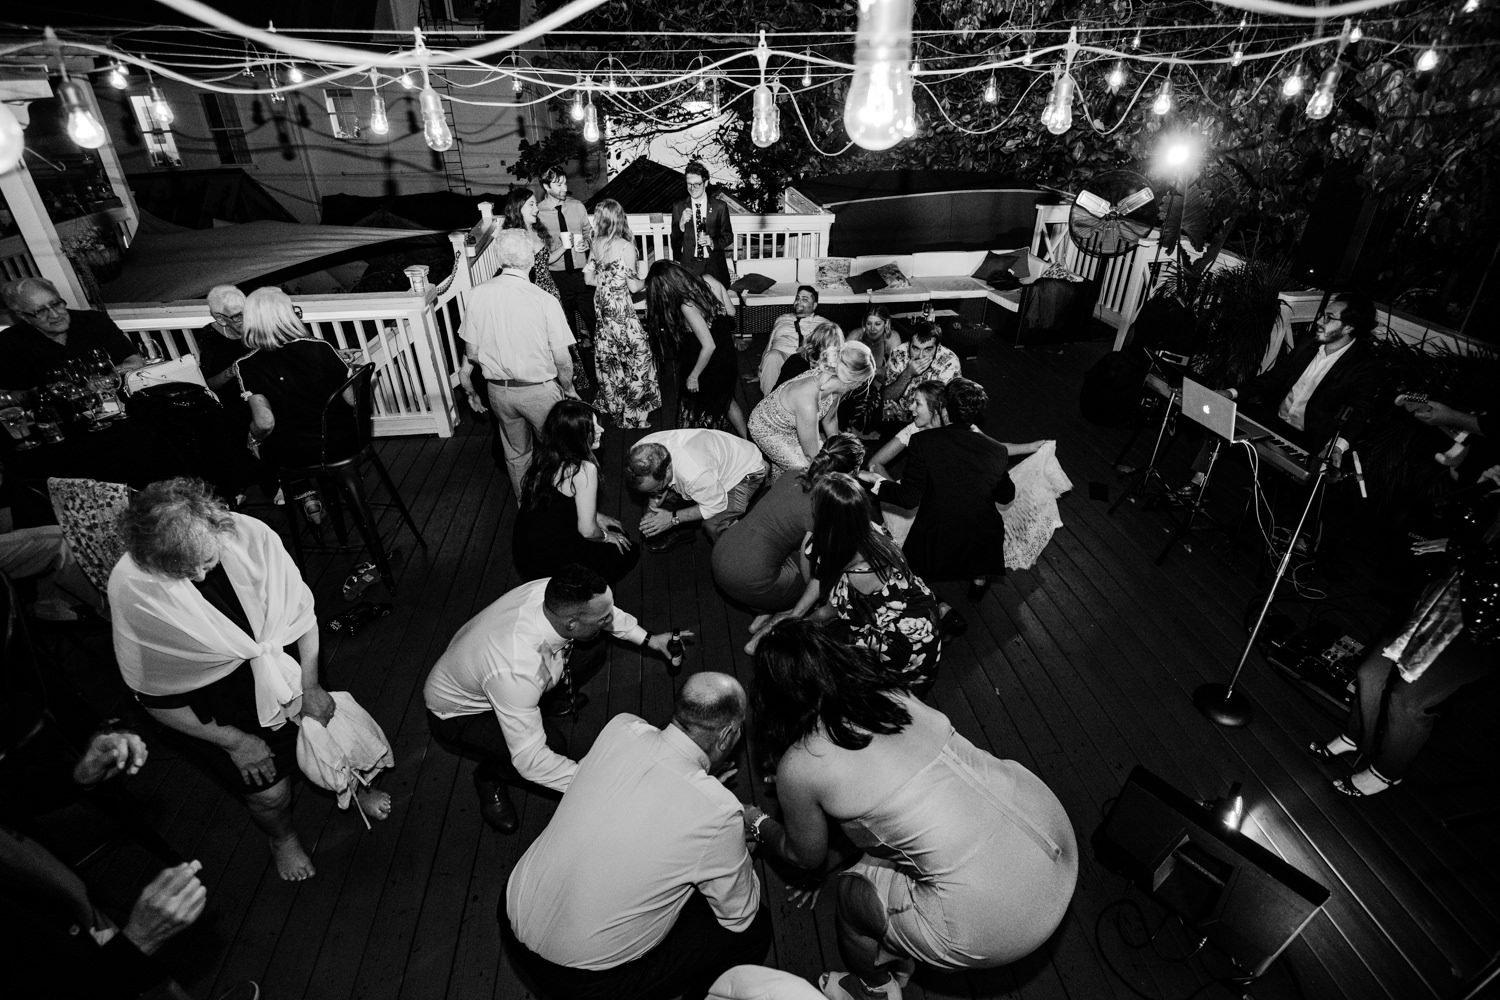 Everyone dancing at a wedding reception at at bagatelle in key west